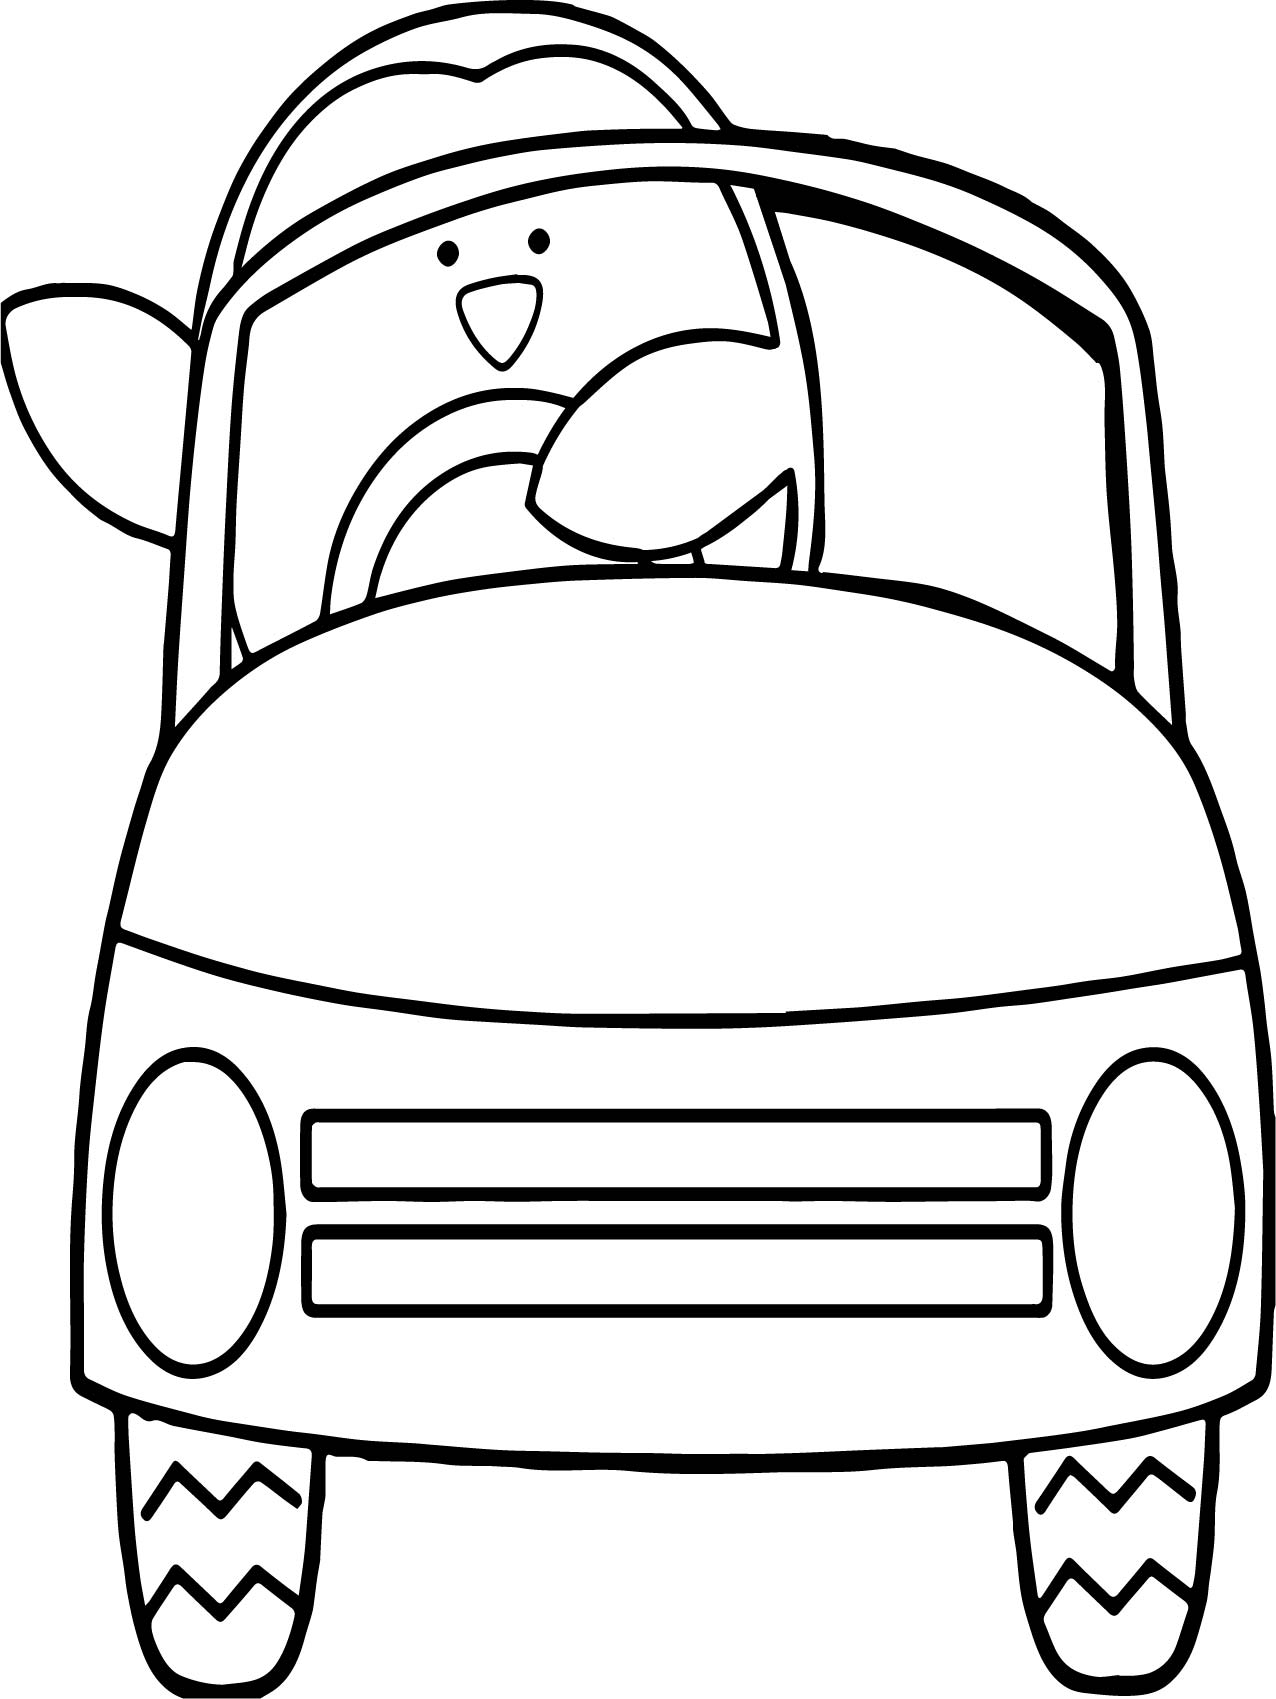 toy cars coloring pages - photo#38